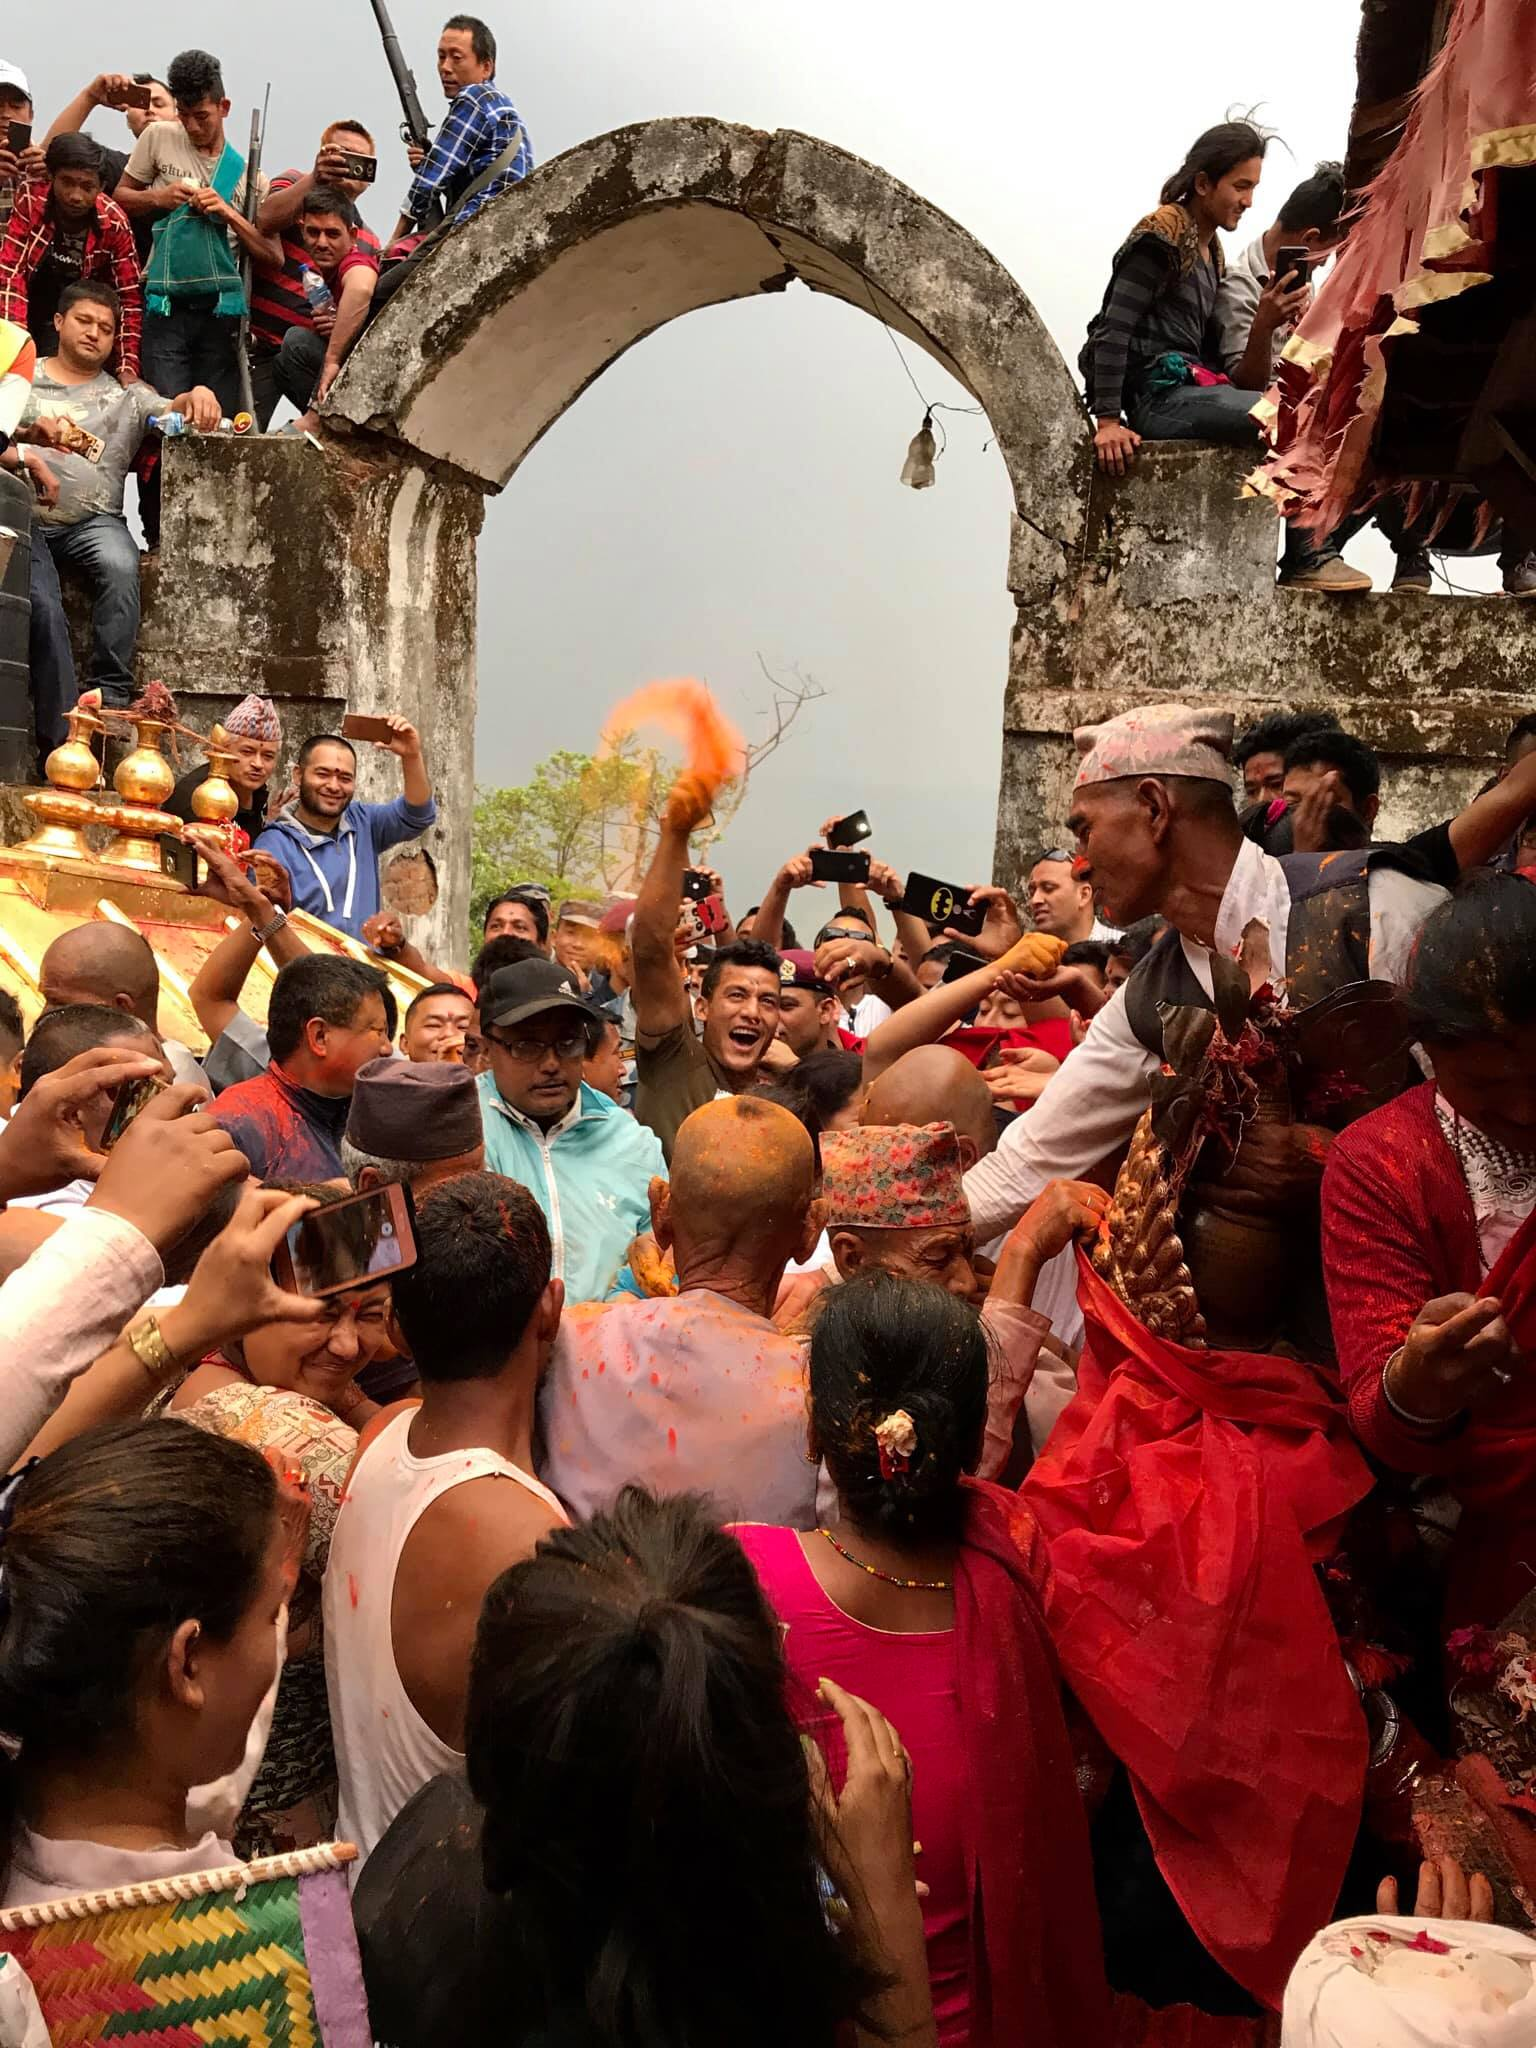 A Devotee Scattering Vermillion Powder in Sindure Jatra